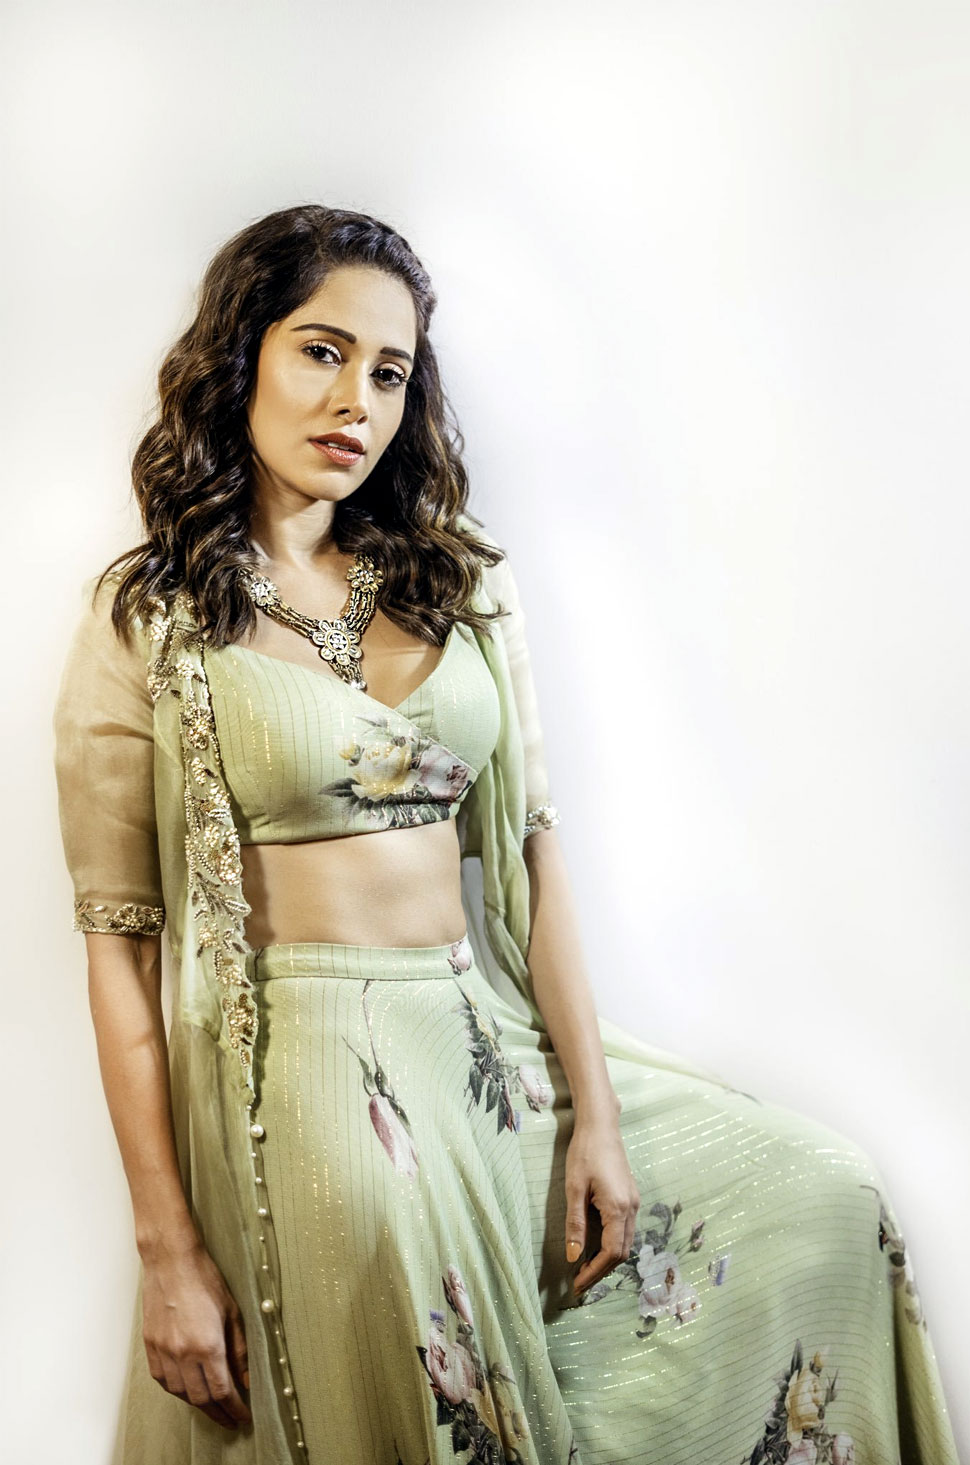 Dream Girl Actress Nushrat Bharucha Entered In A Mens Toilet By Mistake